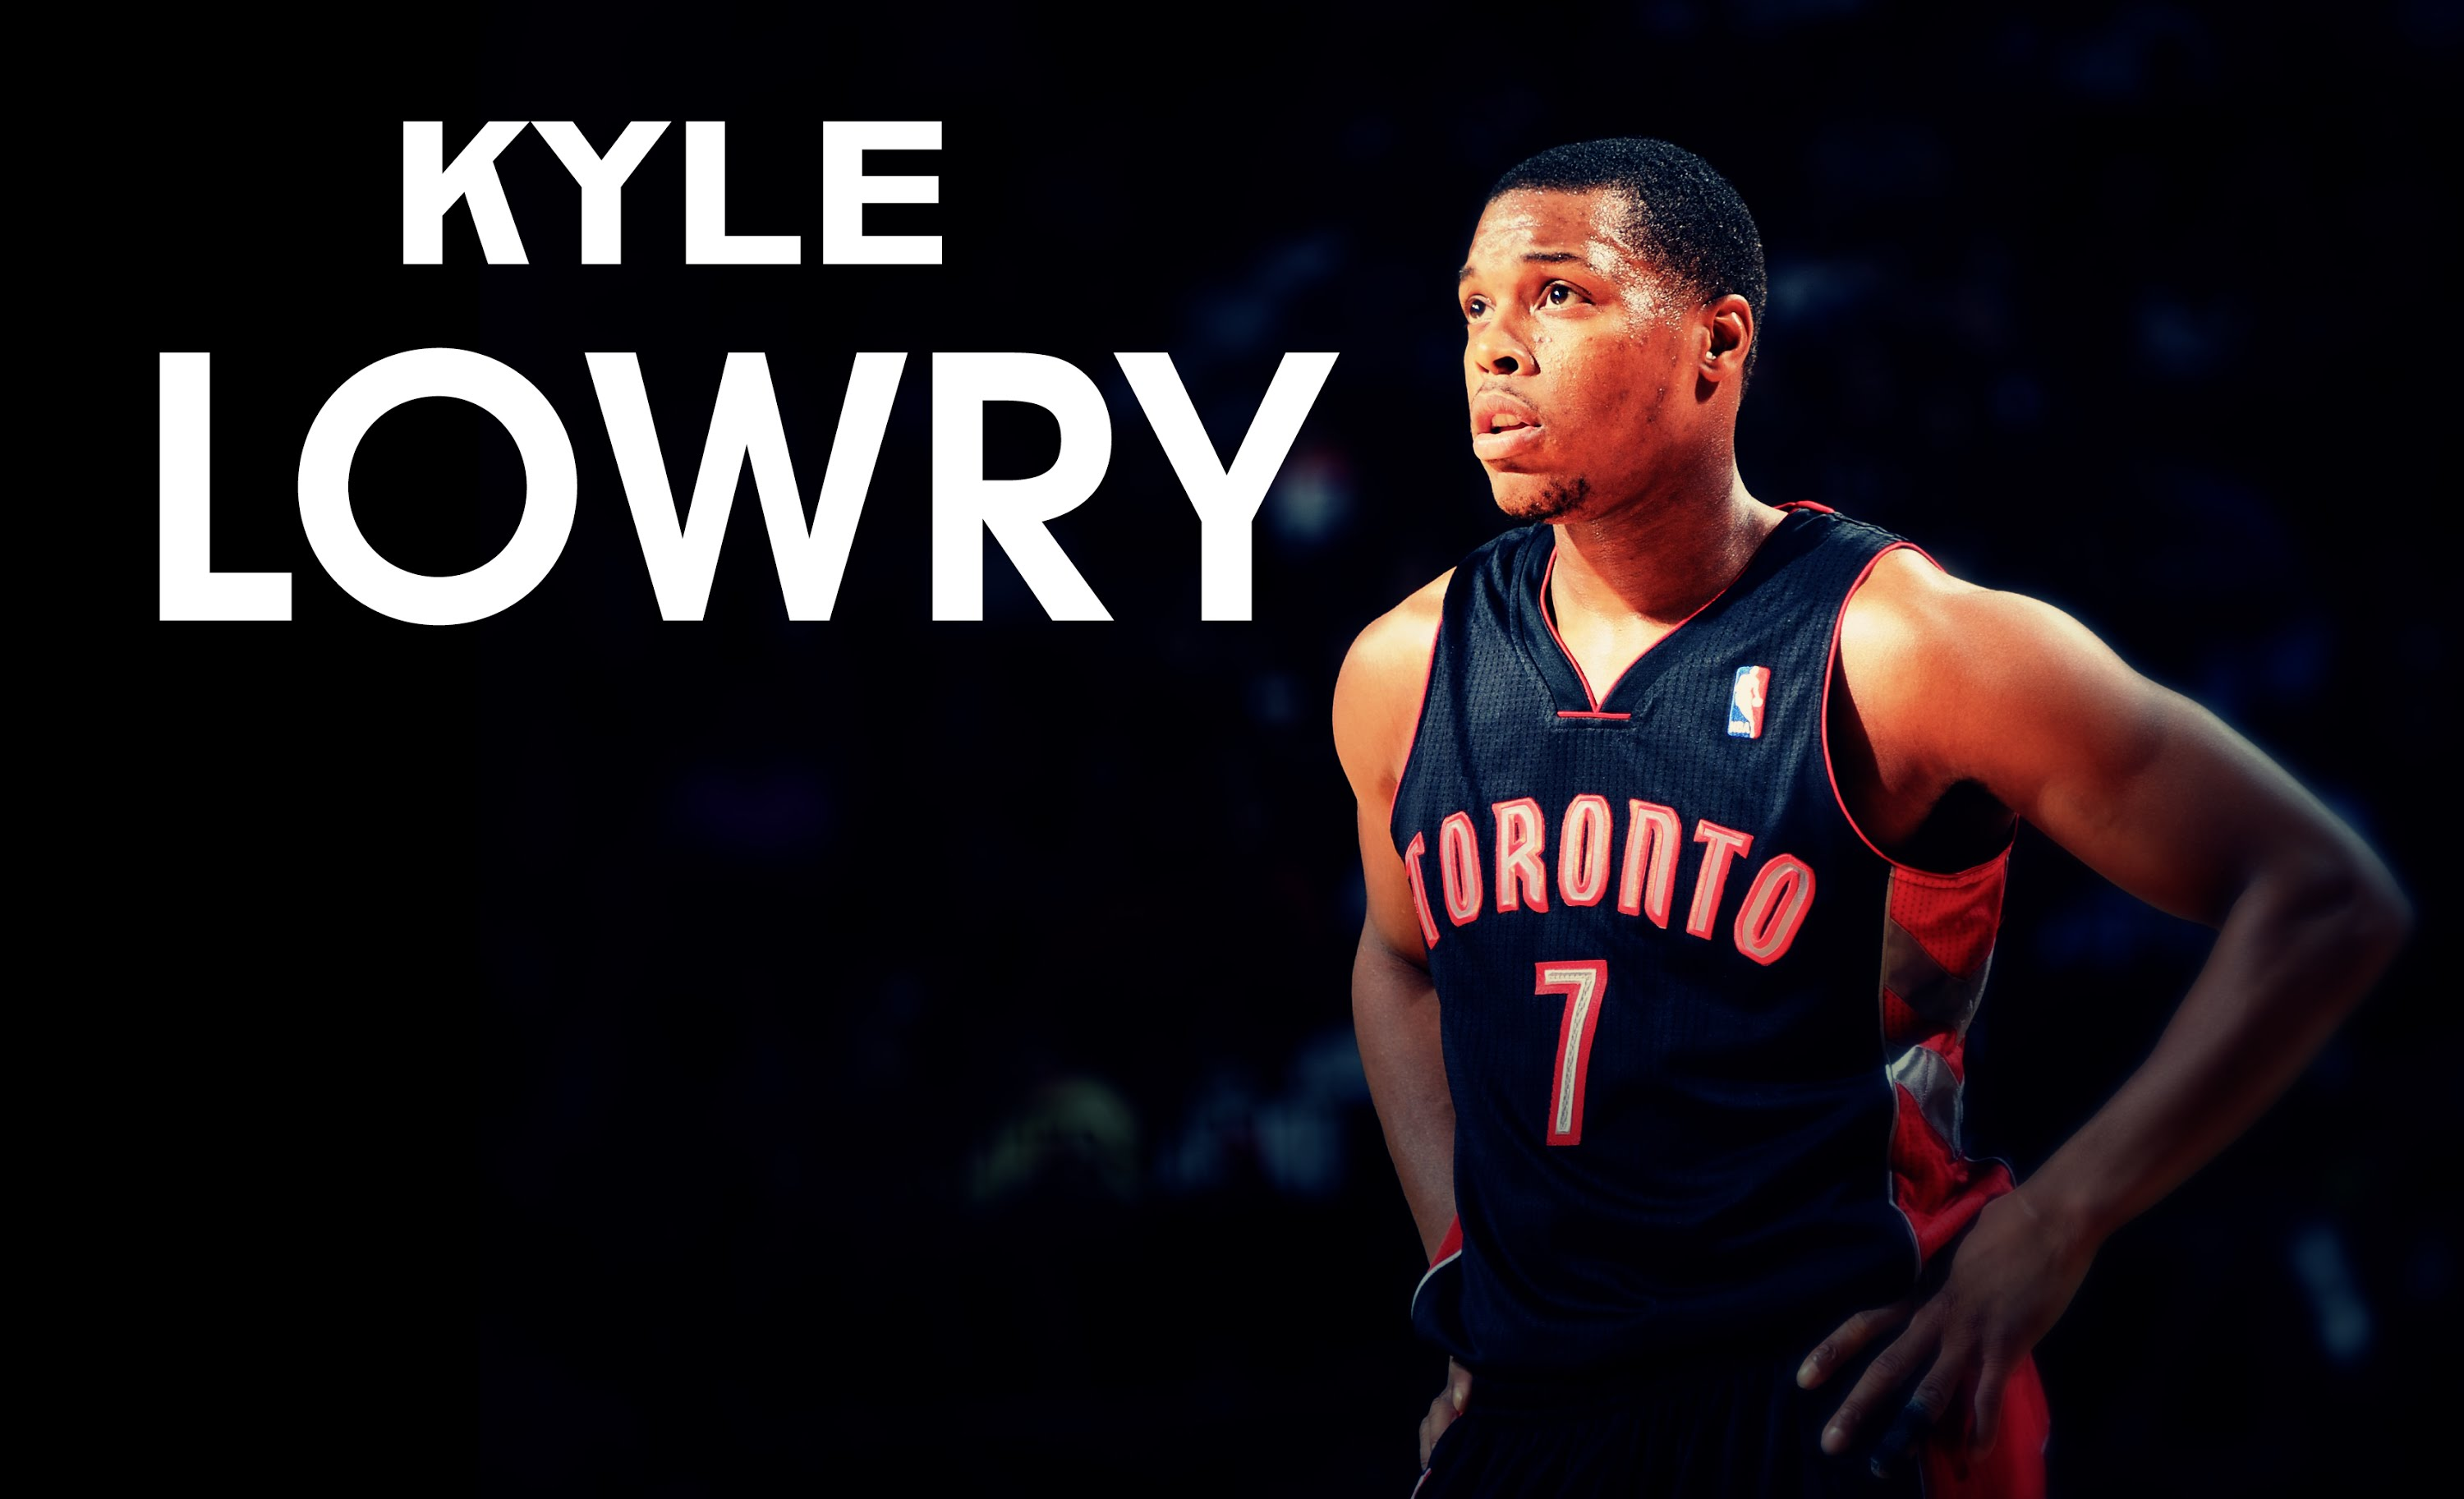 Kyle lowry wallpapers high resolution and quality download - Kyle wallpaper ...